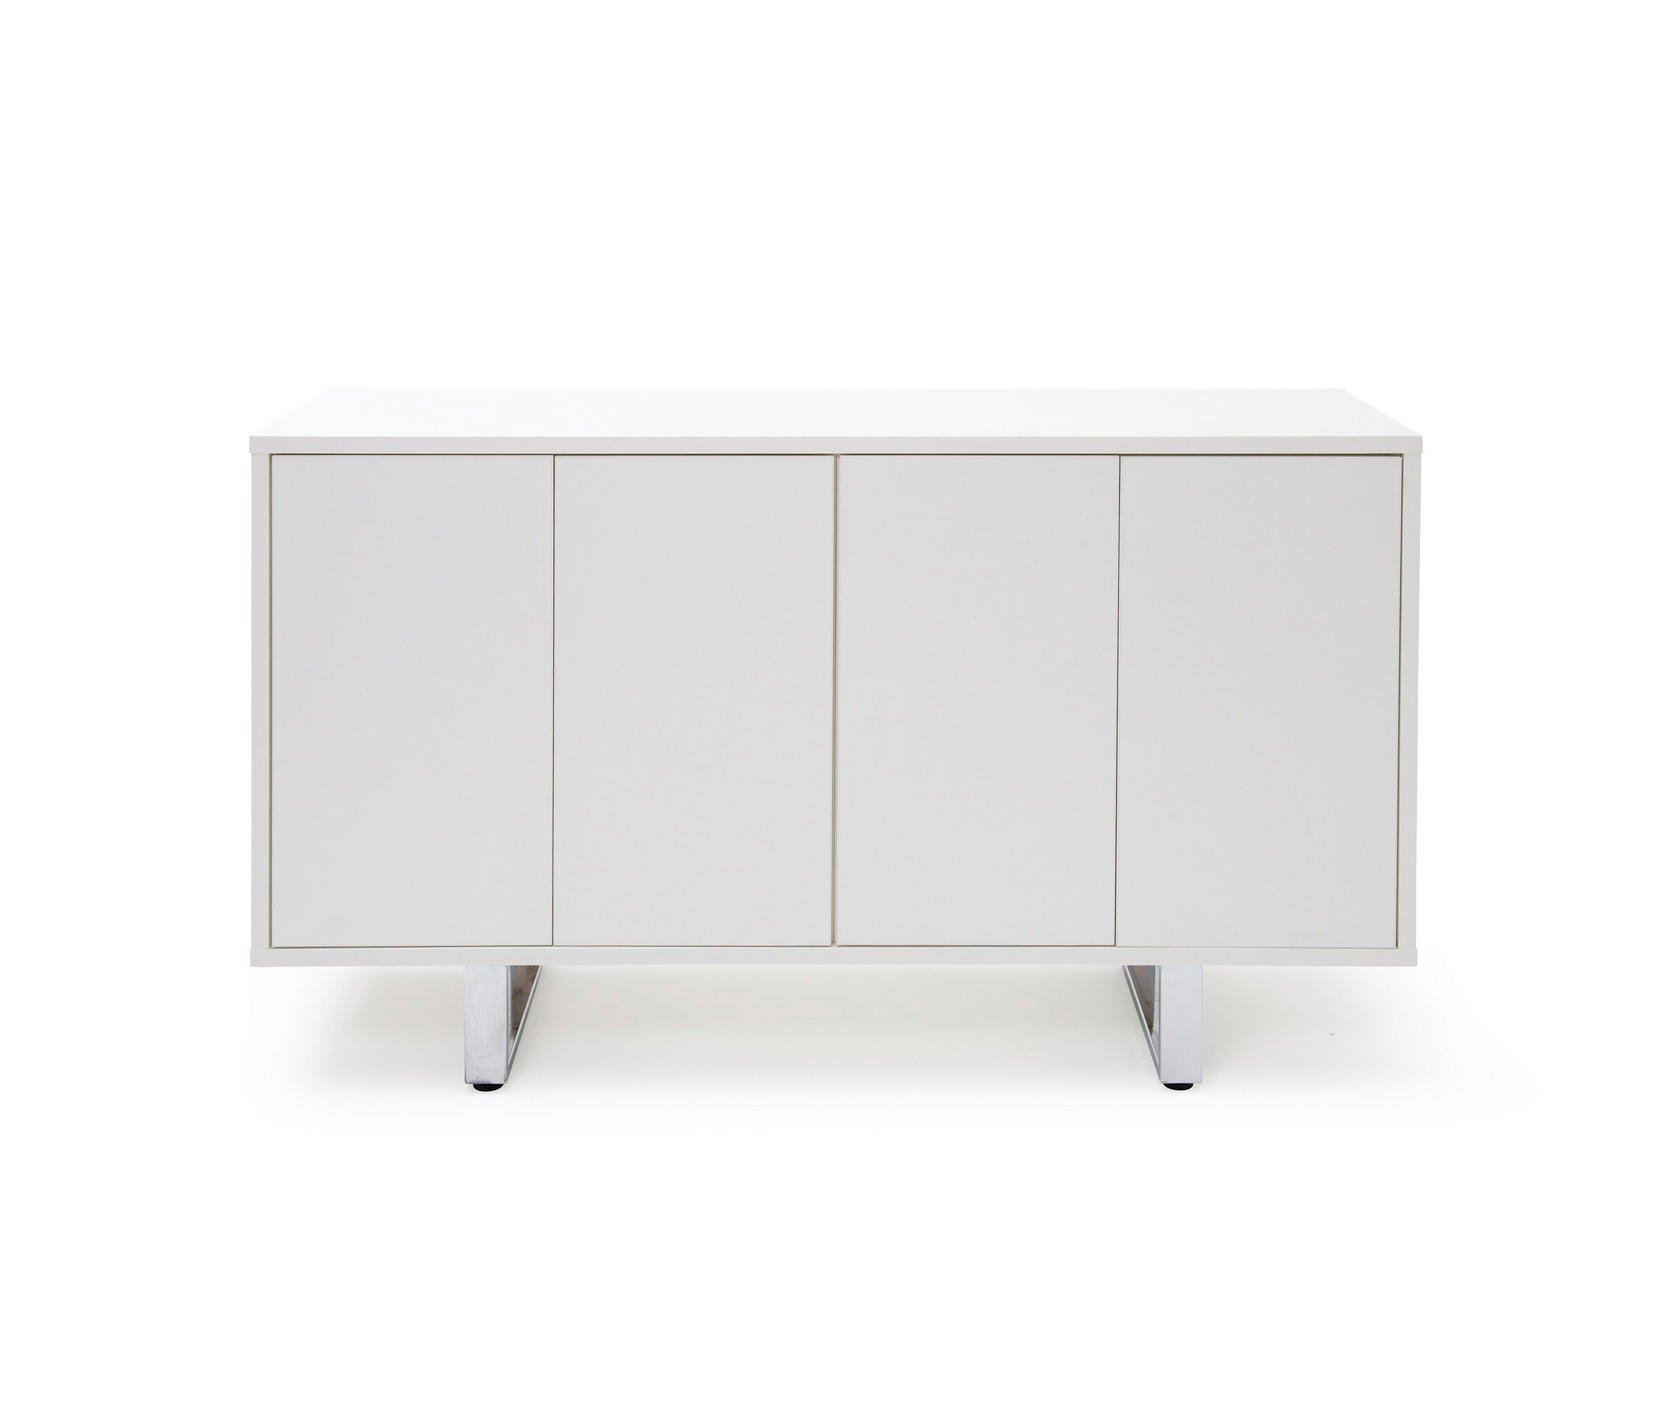 Andante – Sideboards / Kommoden Von Spacestor | Architonic Throughout Palisade Sideboards (View 1 of 30)